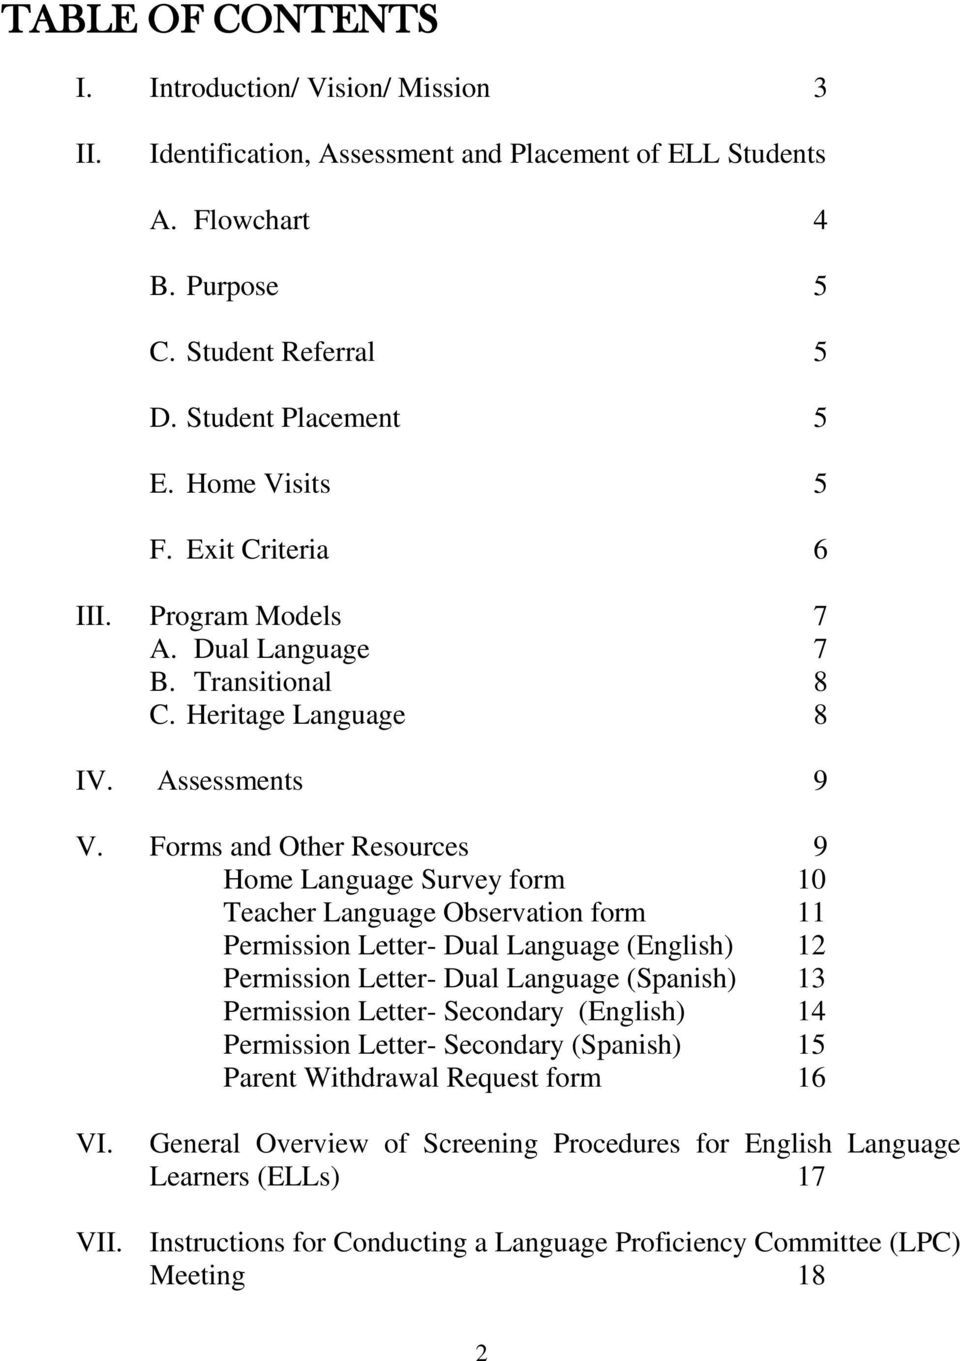 Forms and Other Resources 9 Home Language Survey form 10 Teacher Language Observation form 11 Permission Letter- Dual Language (English) 12 Permission Letter- Dual Language (Spanish) 13 Permission